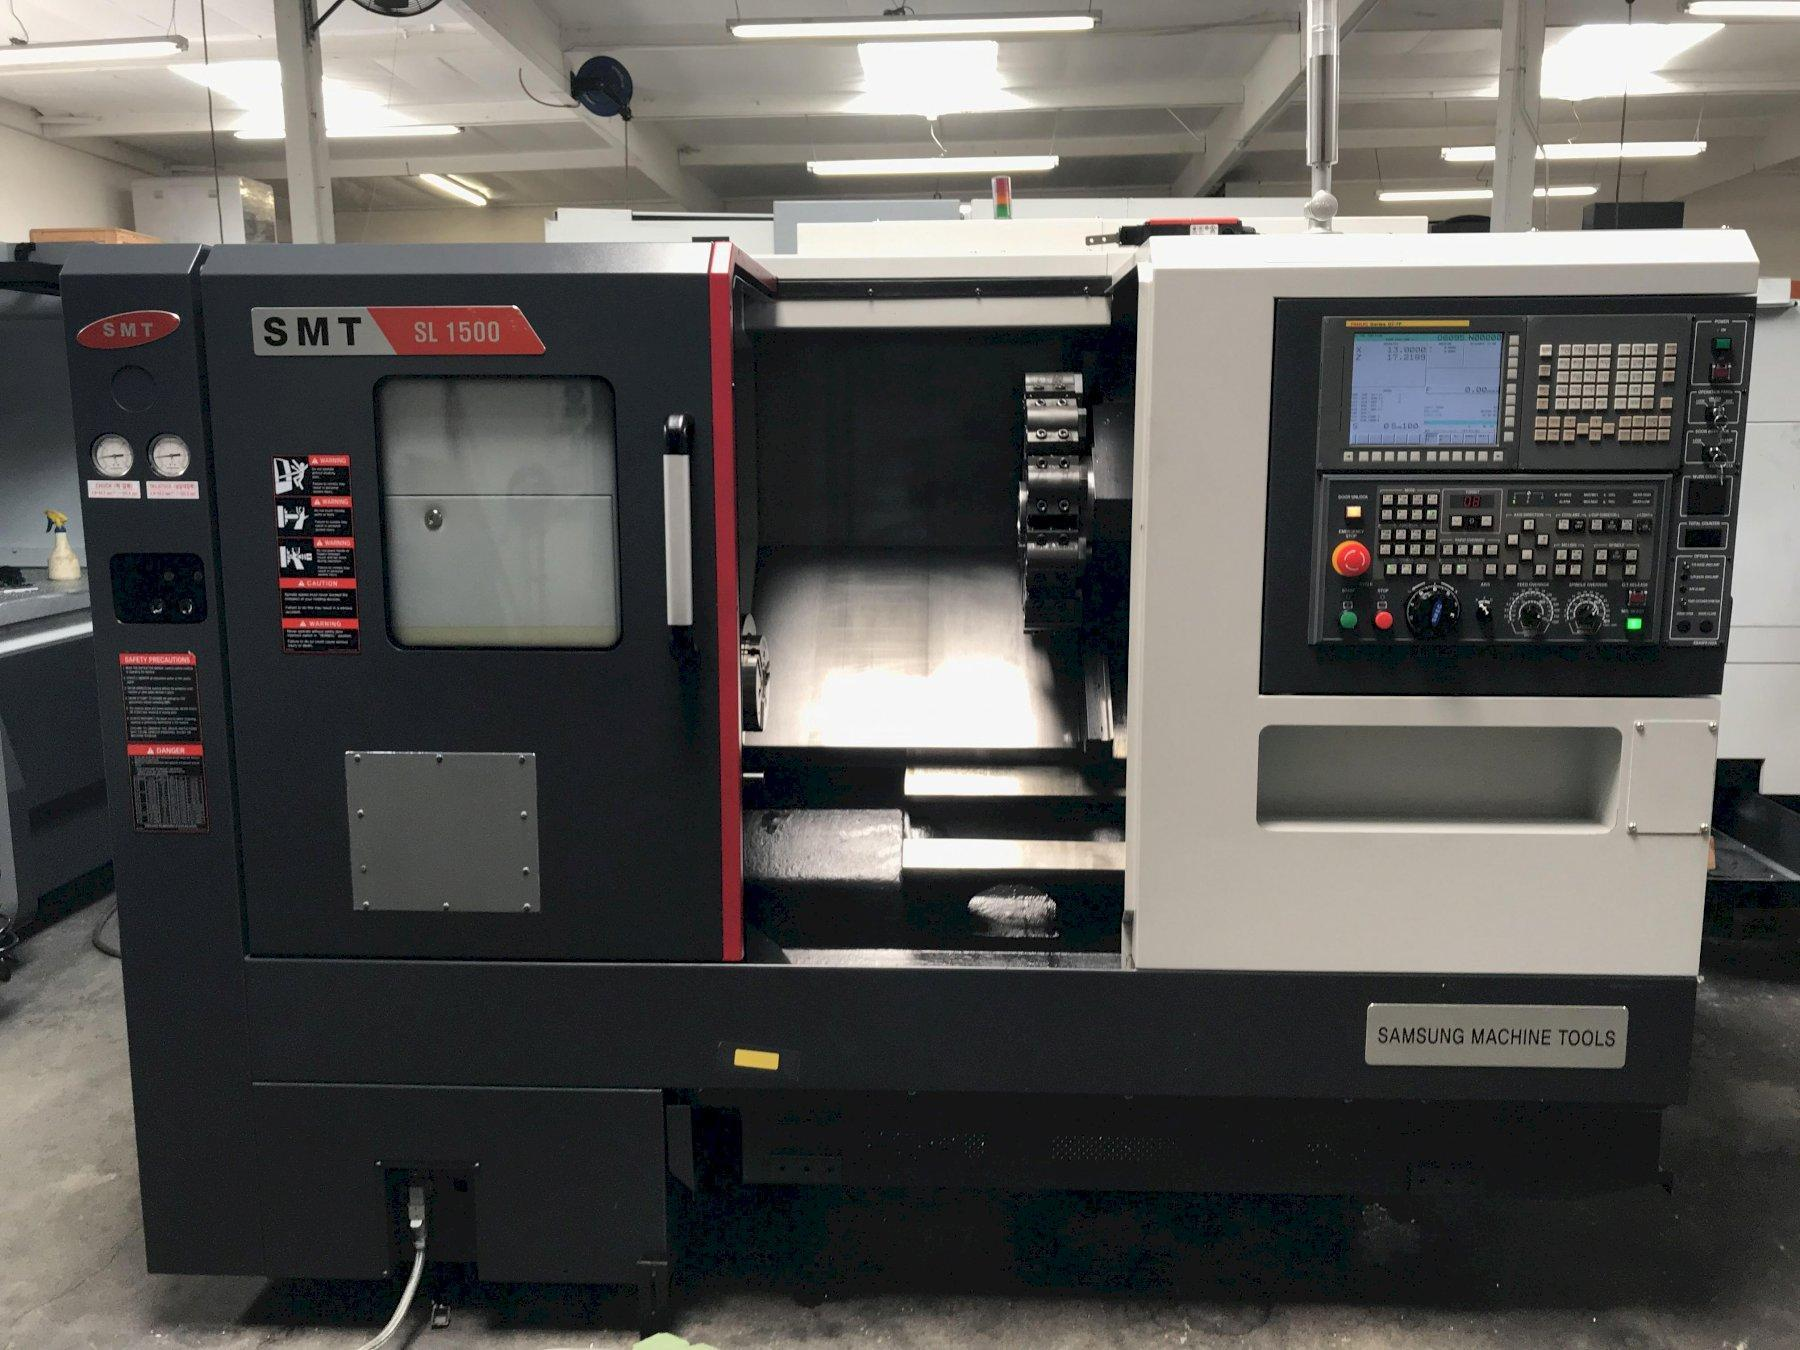 """Samsung SMT SL-1500 CNC Lathe 2017 with: Fanuc Oi-TF Control, 6"""" Chuck, Tool Presetter, Tailstock, 6000 RPM Spindle, 20.07"""" Max Swing, 12-Position Turret, and Coolant Tank."""